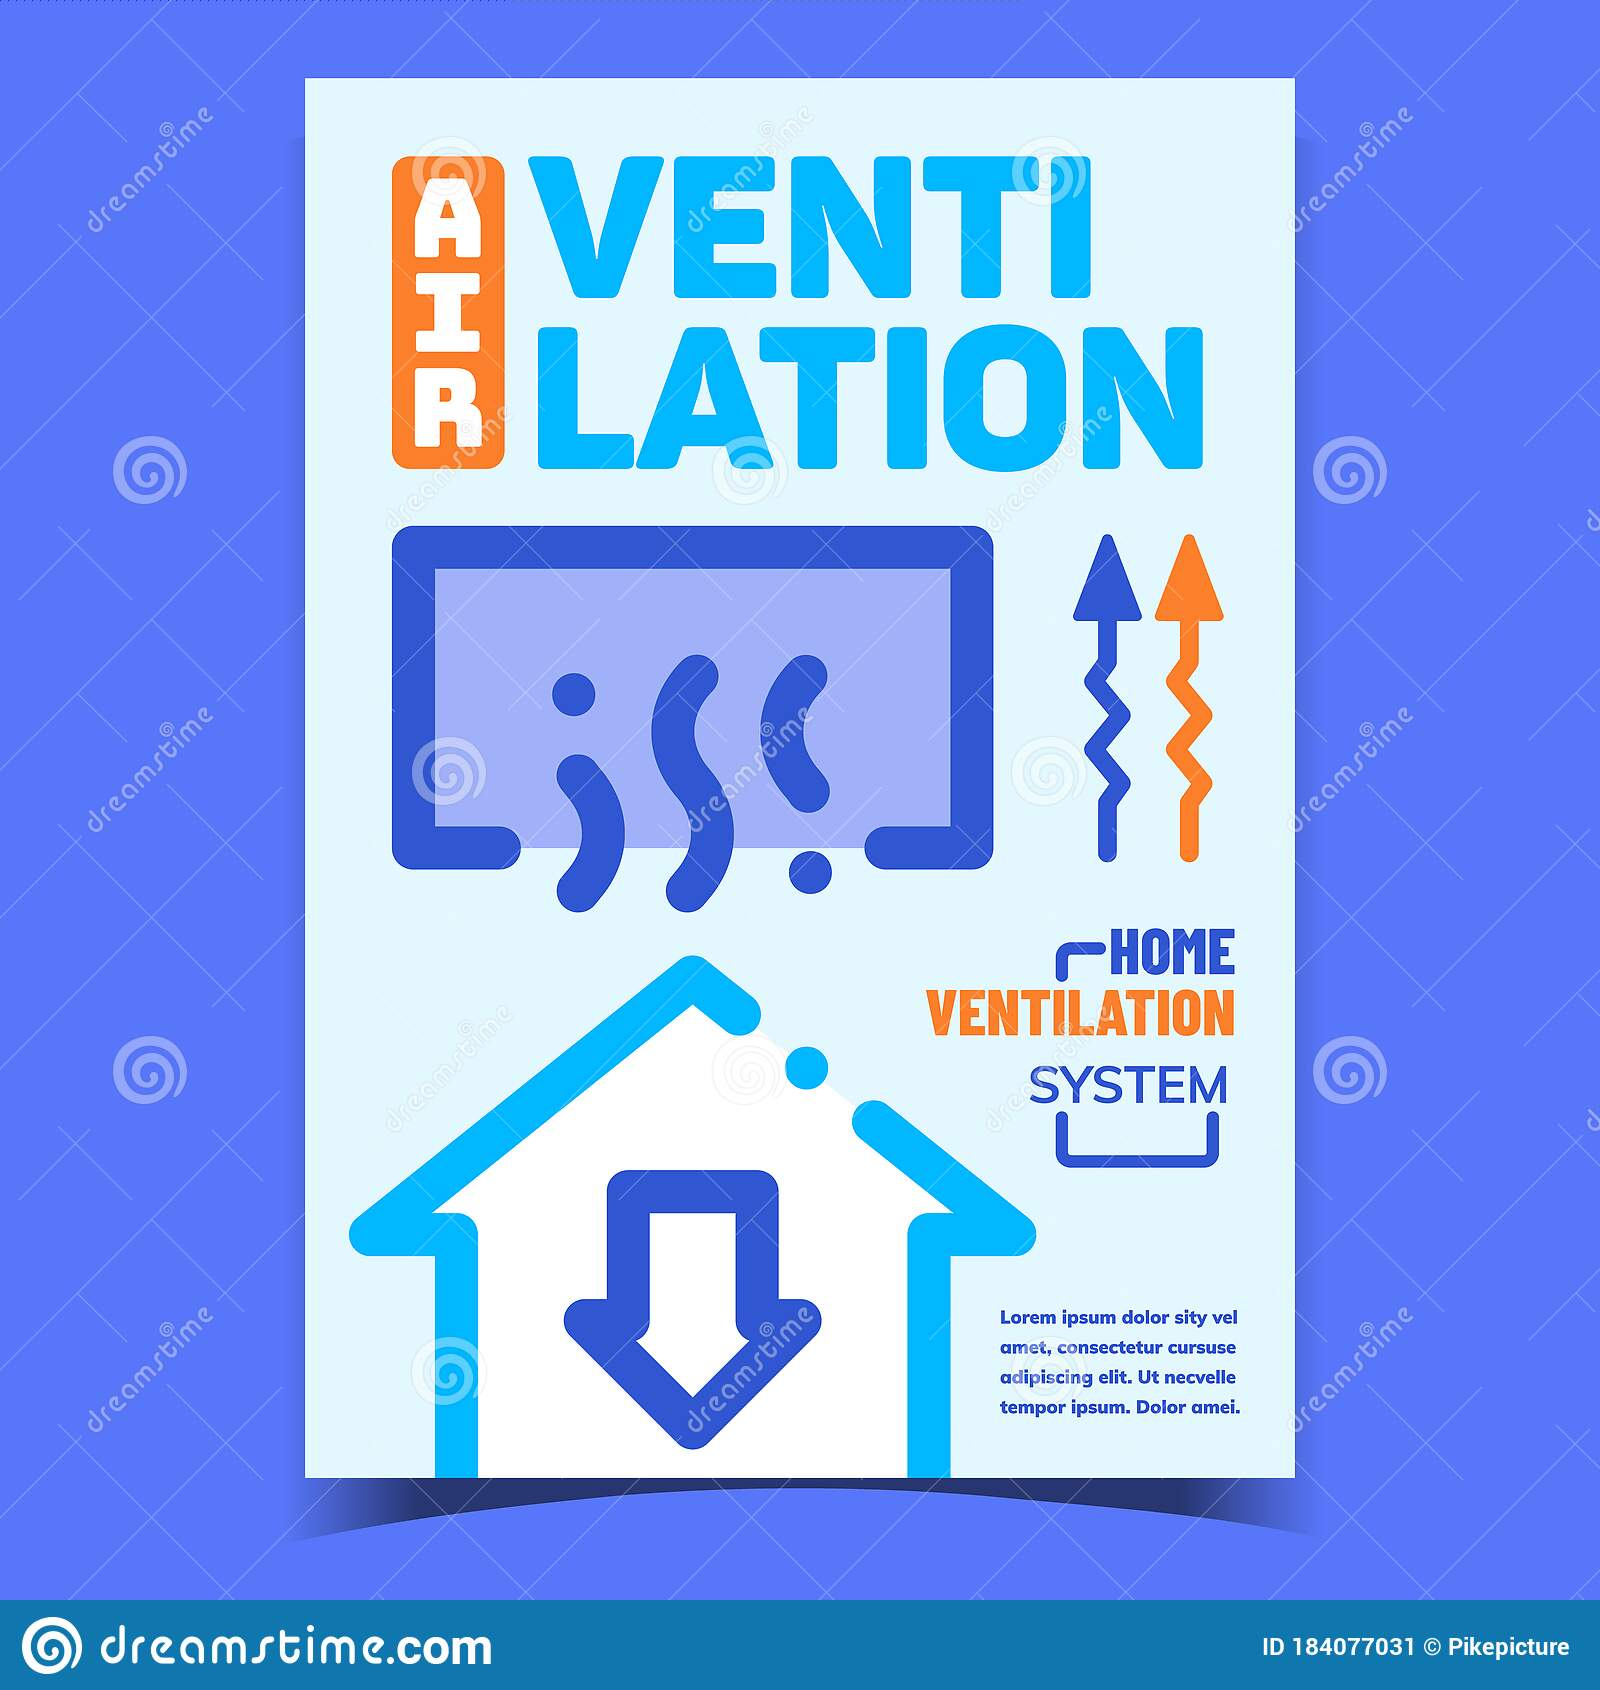 Air Ventilation Creative Advertising Banner Vector Stock Vector Illustration Of Concept Design 184077031